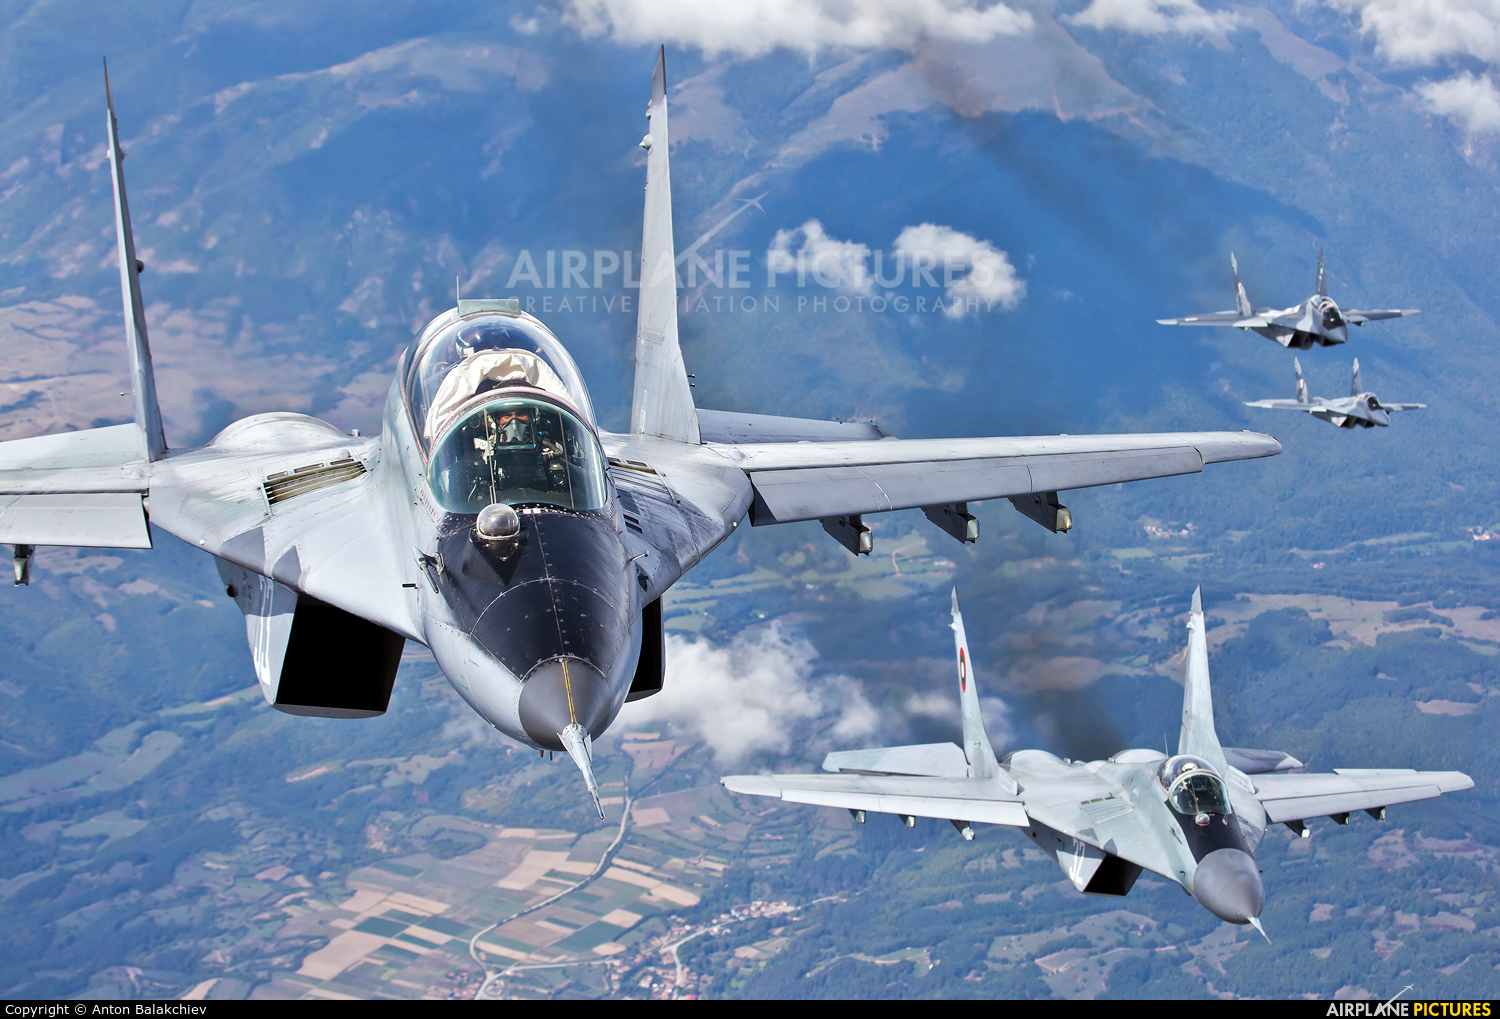 Bulgaria - Air Force 33 aircraft at In Flight - Bulgaria